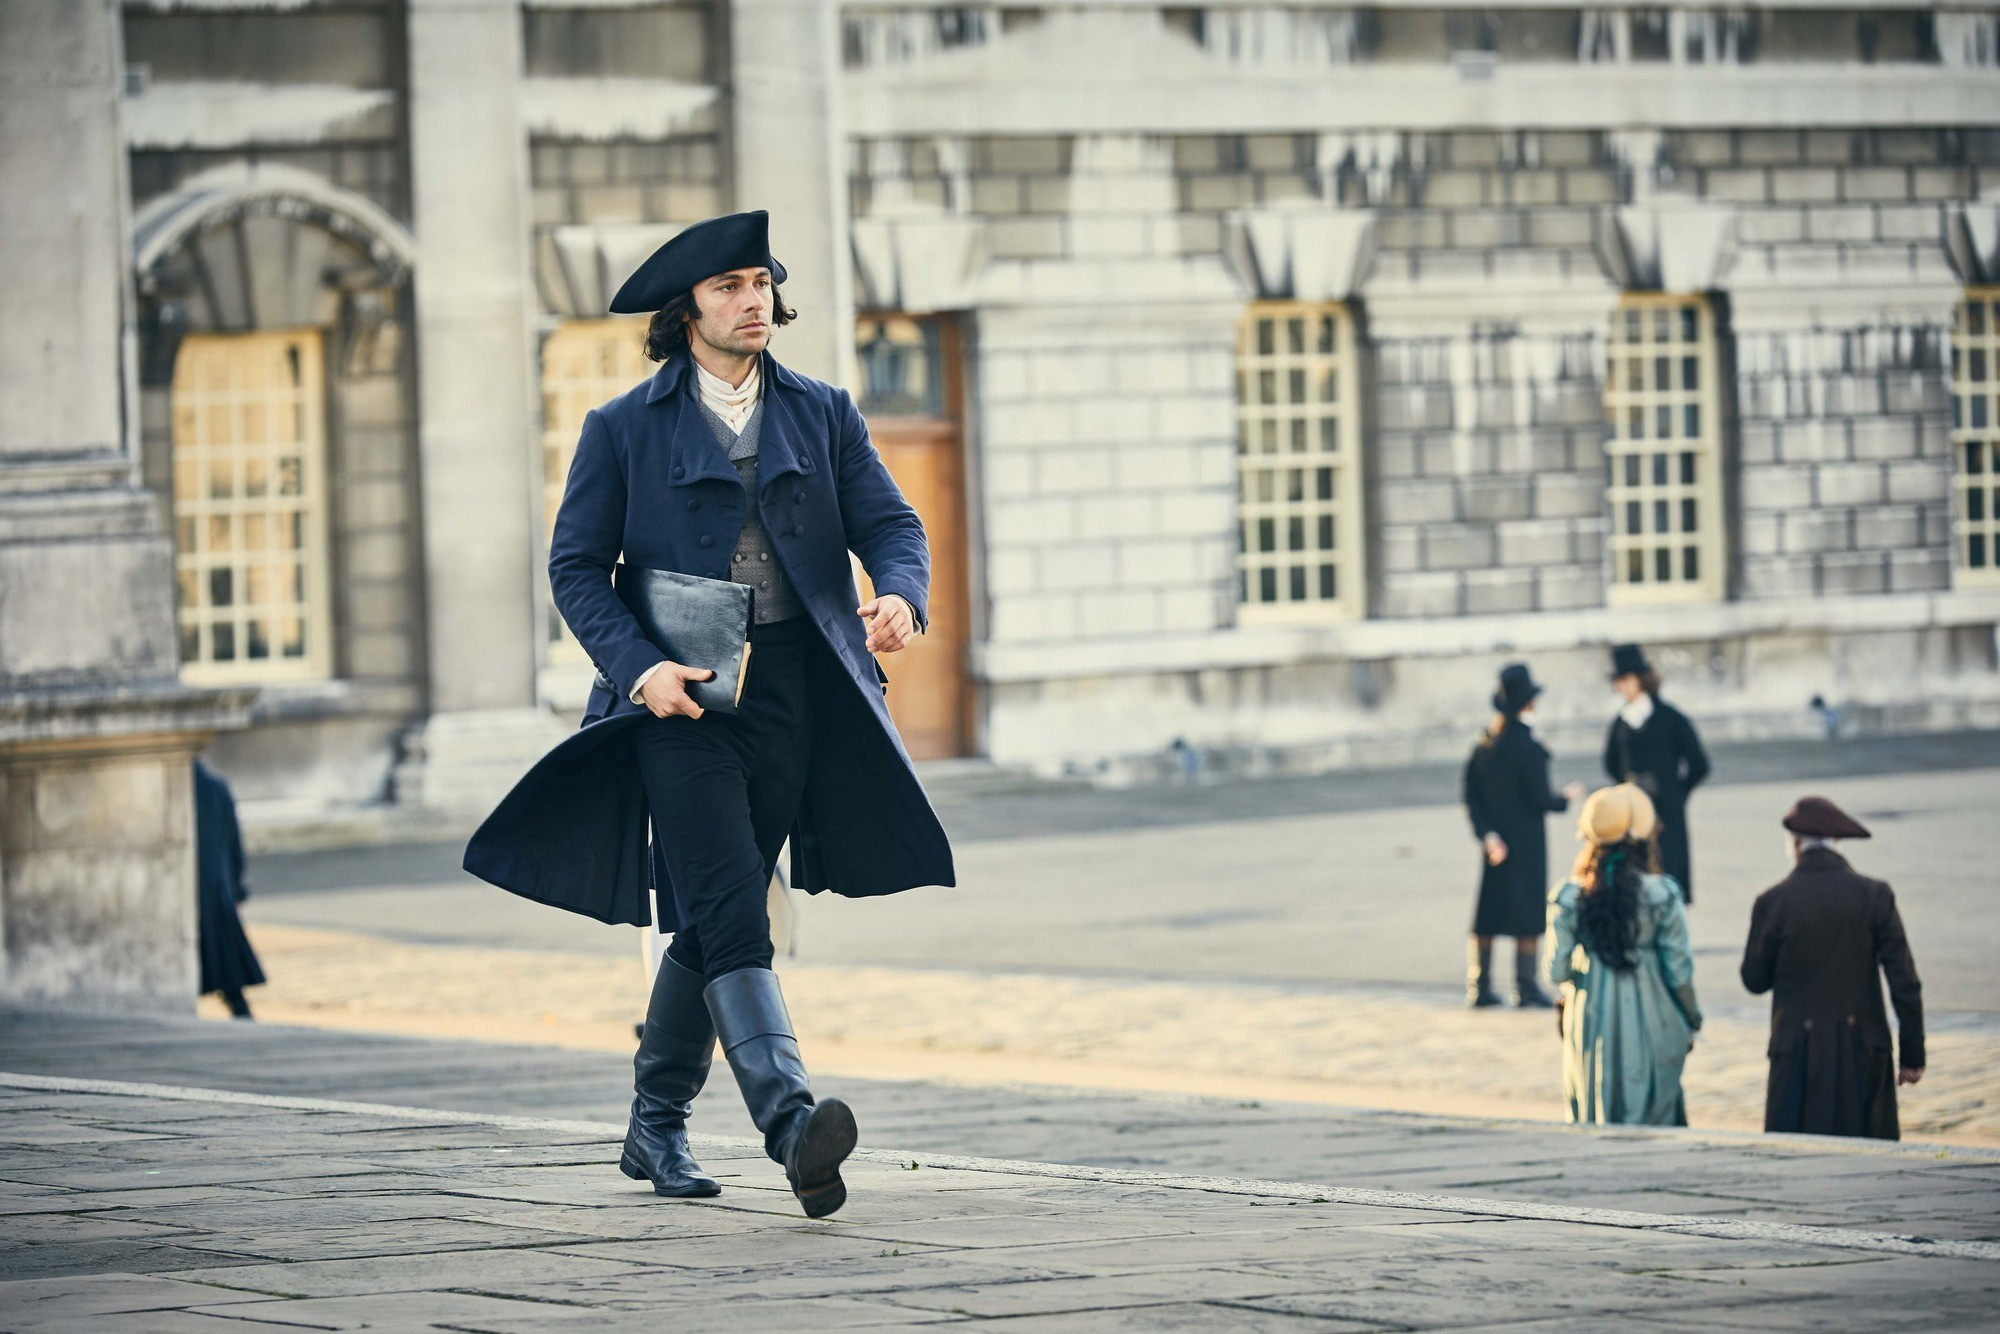 """Ross Poldark in London in the BBC's drama. The capital city was described in contemporary magazines and newspapers as the """"vortex of dissipation"""", says Hannah Greig. (Image Credit: BBC/Mammoth Screen/Robert Viglasky)"""